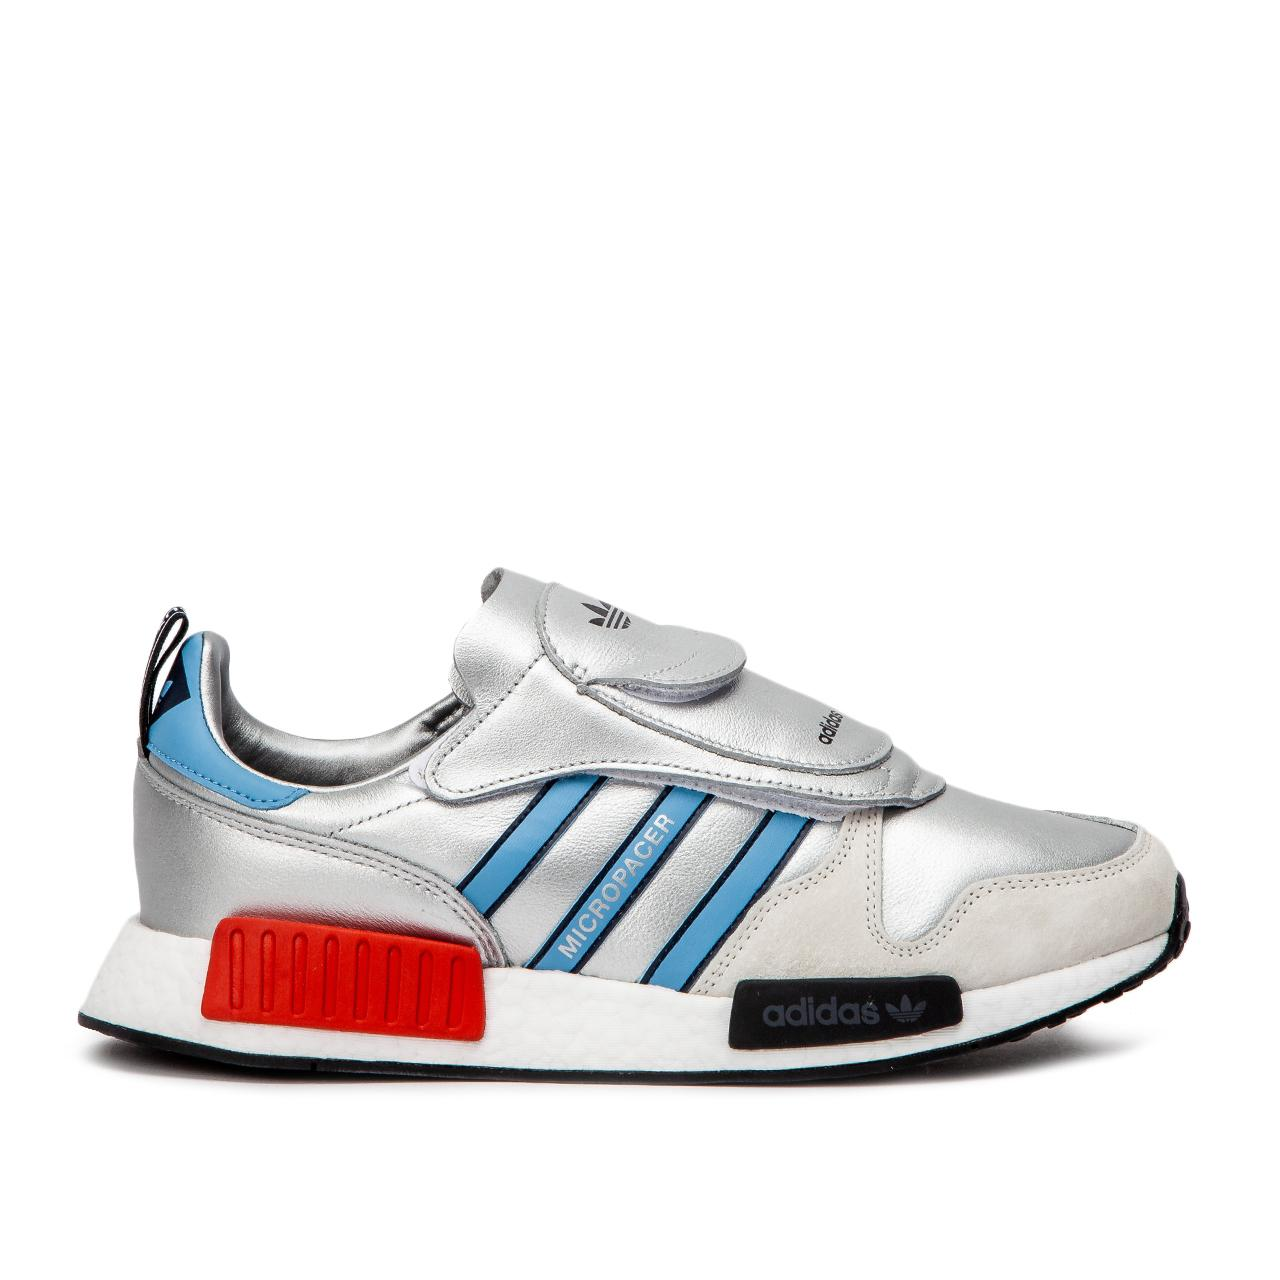 14465fbd4be6 Adidas - Metallic Micropacer X R1 for Men - Lyst. View fullscreen